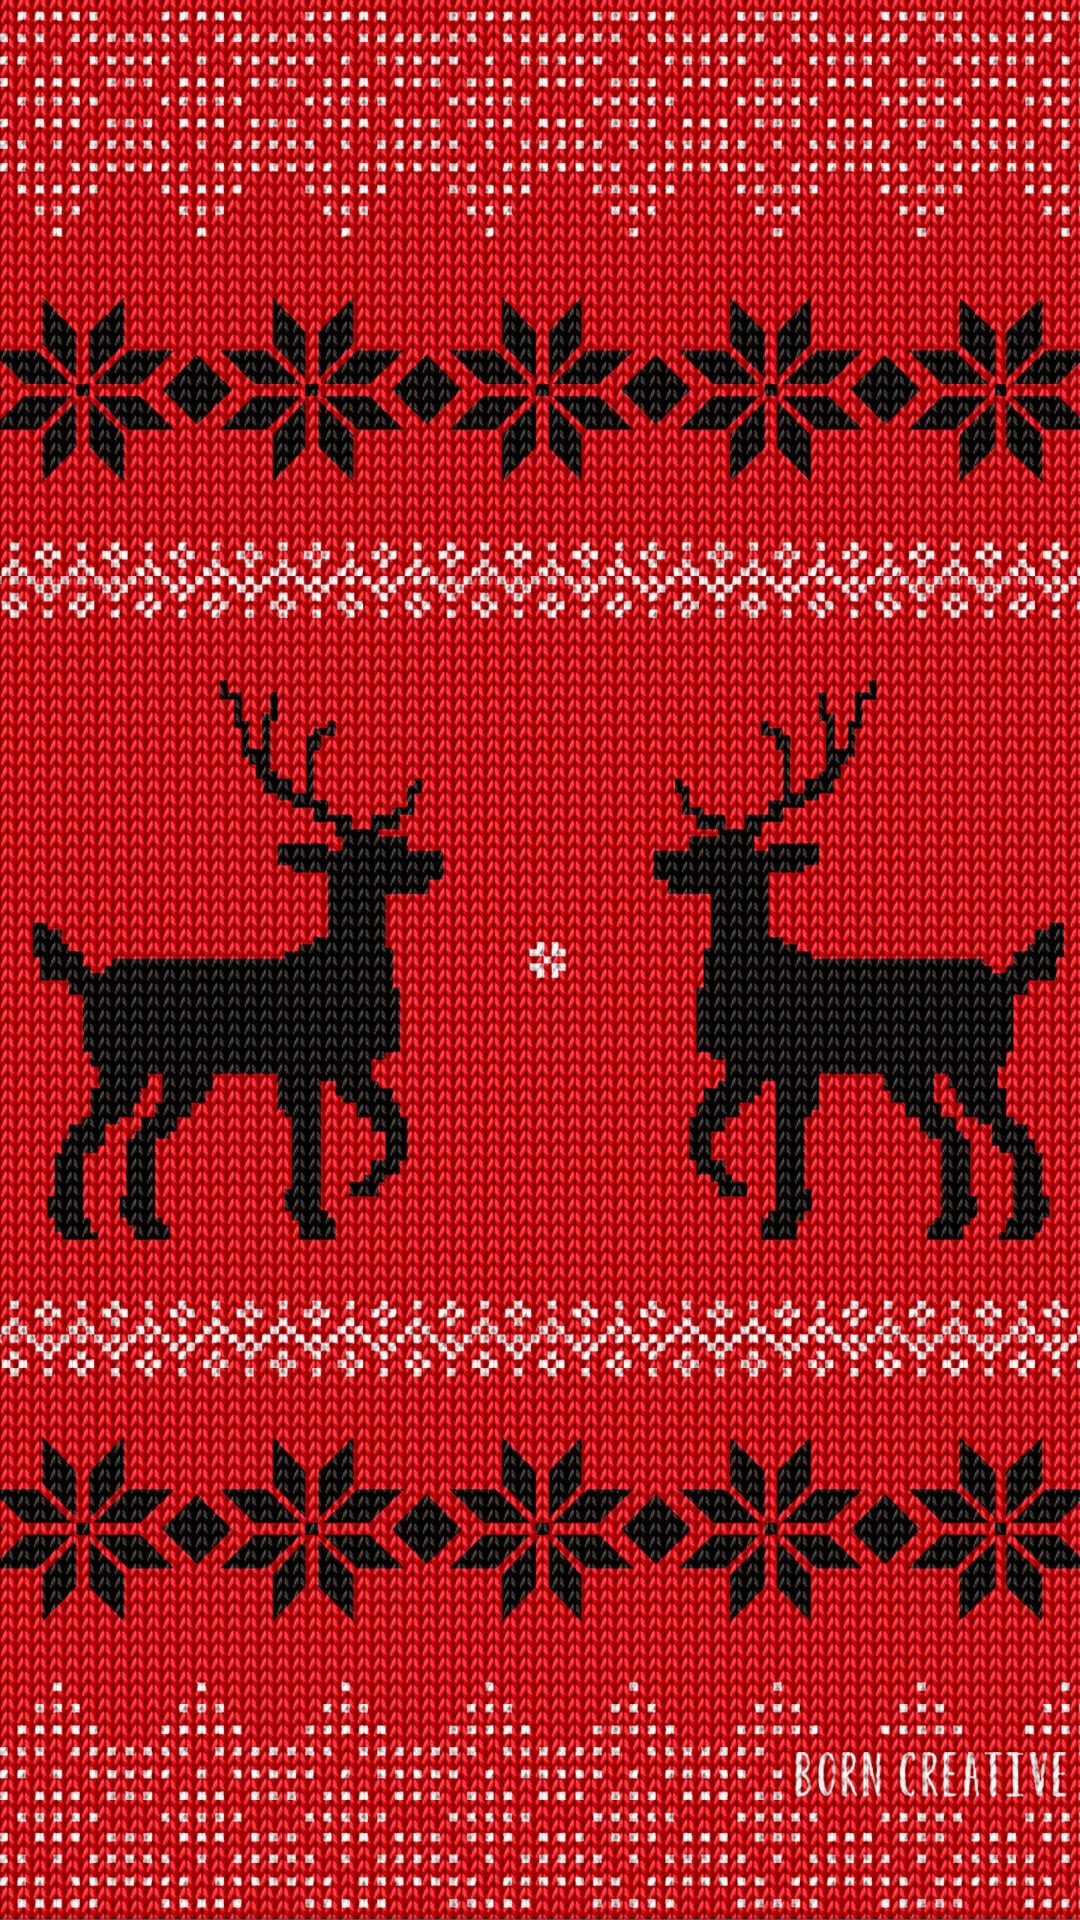 Christmas holiday dress - Ugly Christmas Sweater Hd Wallpaper For Moto X Screens Hdwallpapers